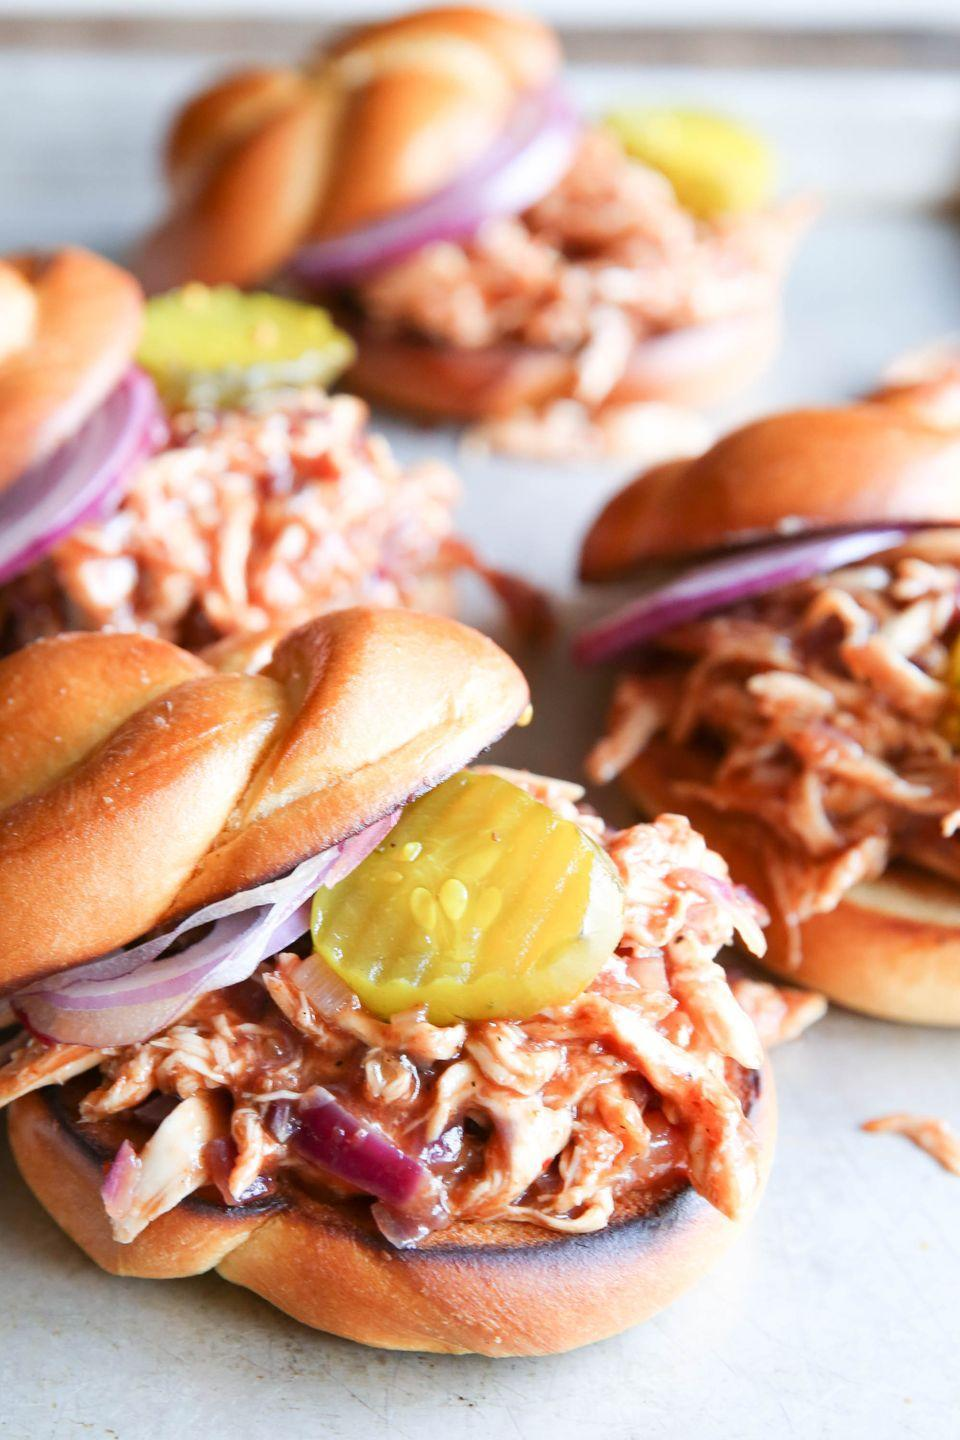 """<p>Waiting for summer for BBQ chicken was not going to happen.</p><p>Get the recipe from <a href=""""https://www.delish.com/cooking/recipe-ideas/recipes/a51339/bbq-pulled-chicken-sandwiches-recipe/"""" rel=""""nofollow noopener"""" target=""""_blank"""" data-ylk=""""slk:Delish"""" class=""""link rapid-noclick-resp"""">Delish</a>.</p>"""